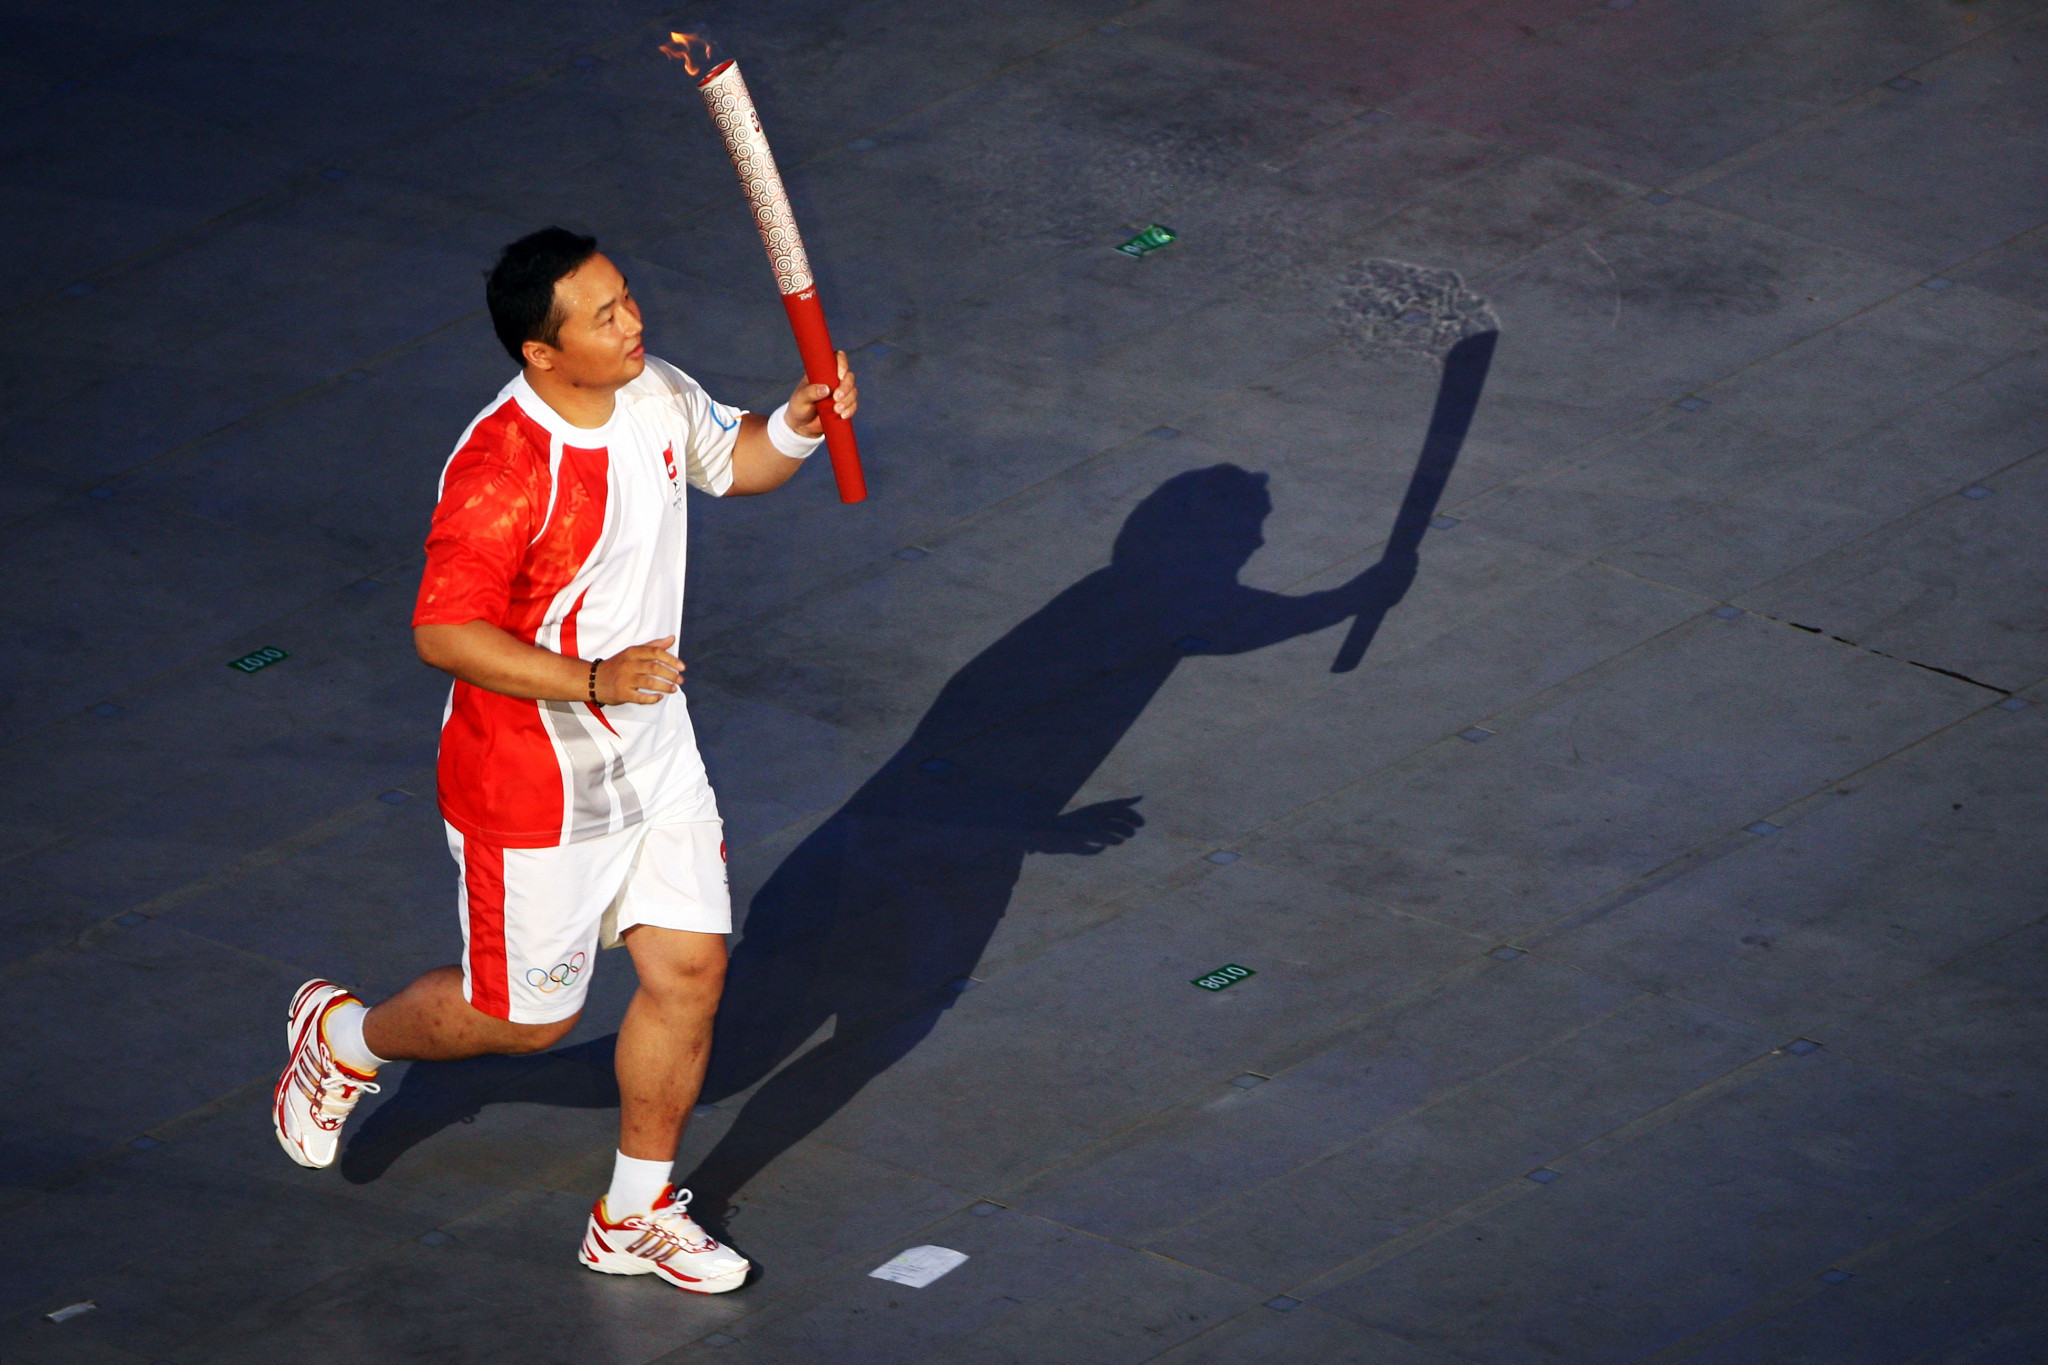 Double Olympic champion Zhang appointed as chairman of Chinese Badminton Association